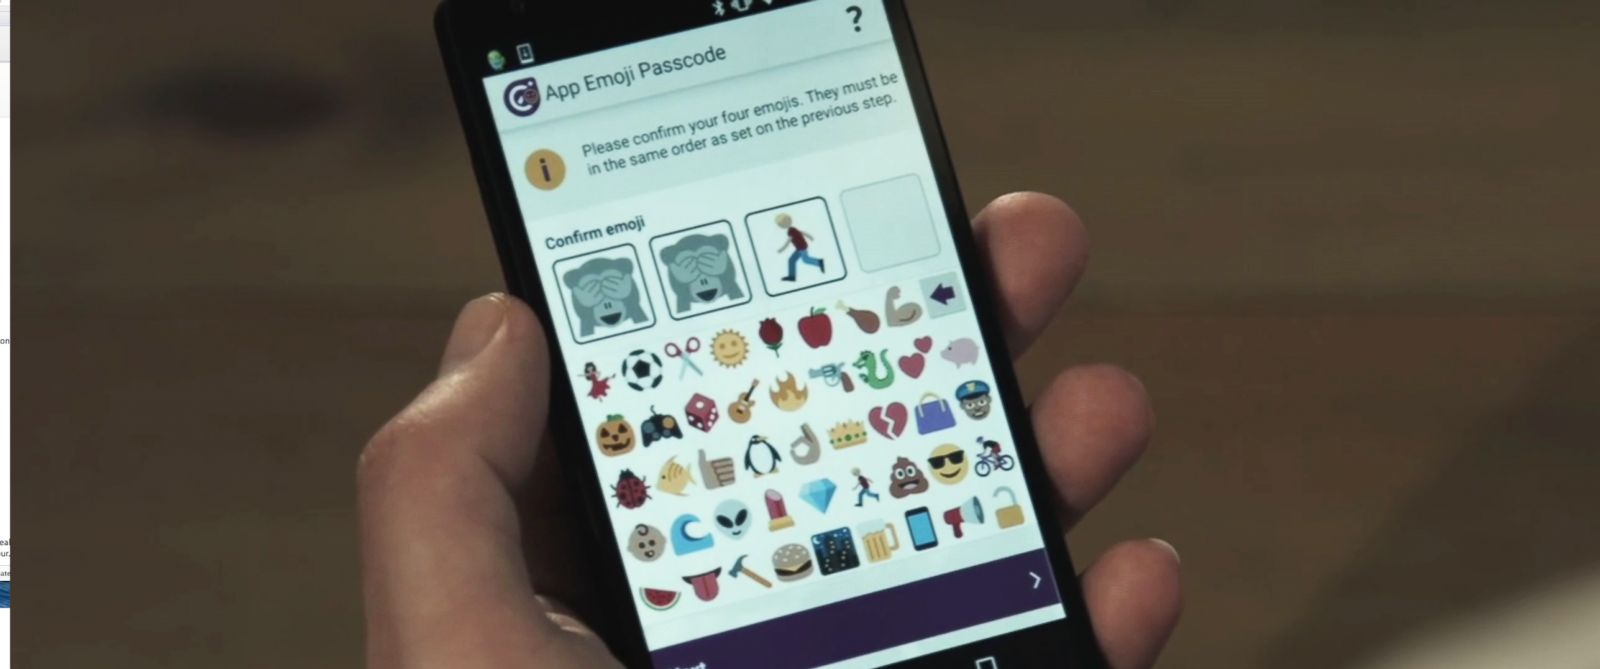 PHOTO: Intelligent Environments has launched the world's first emoji-only passcode in the UK.